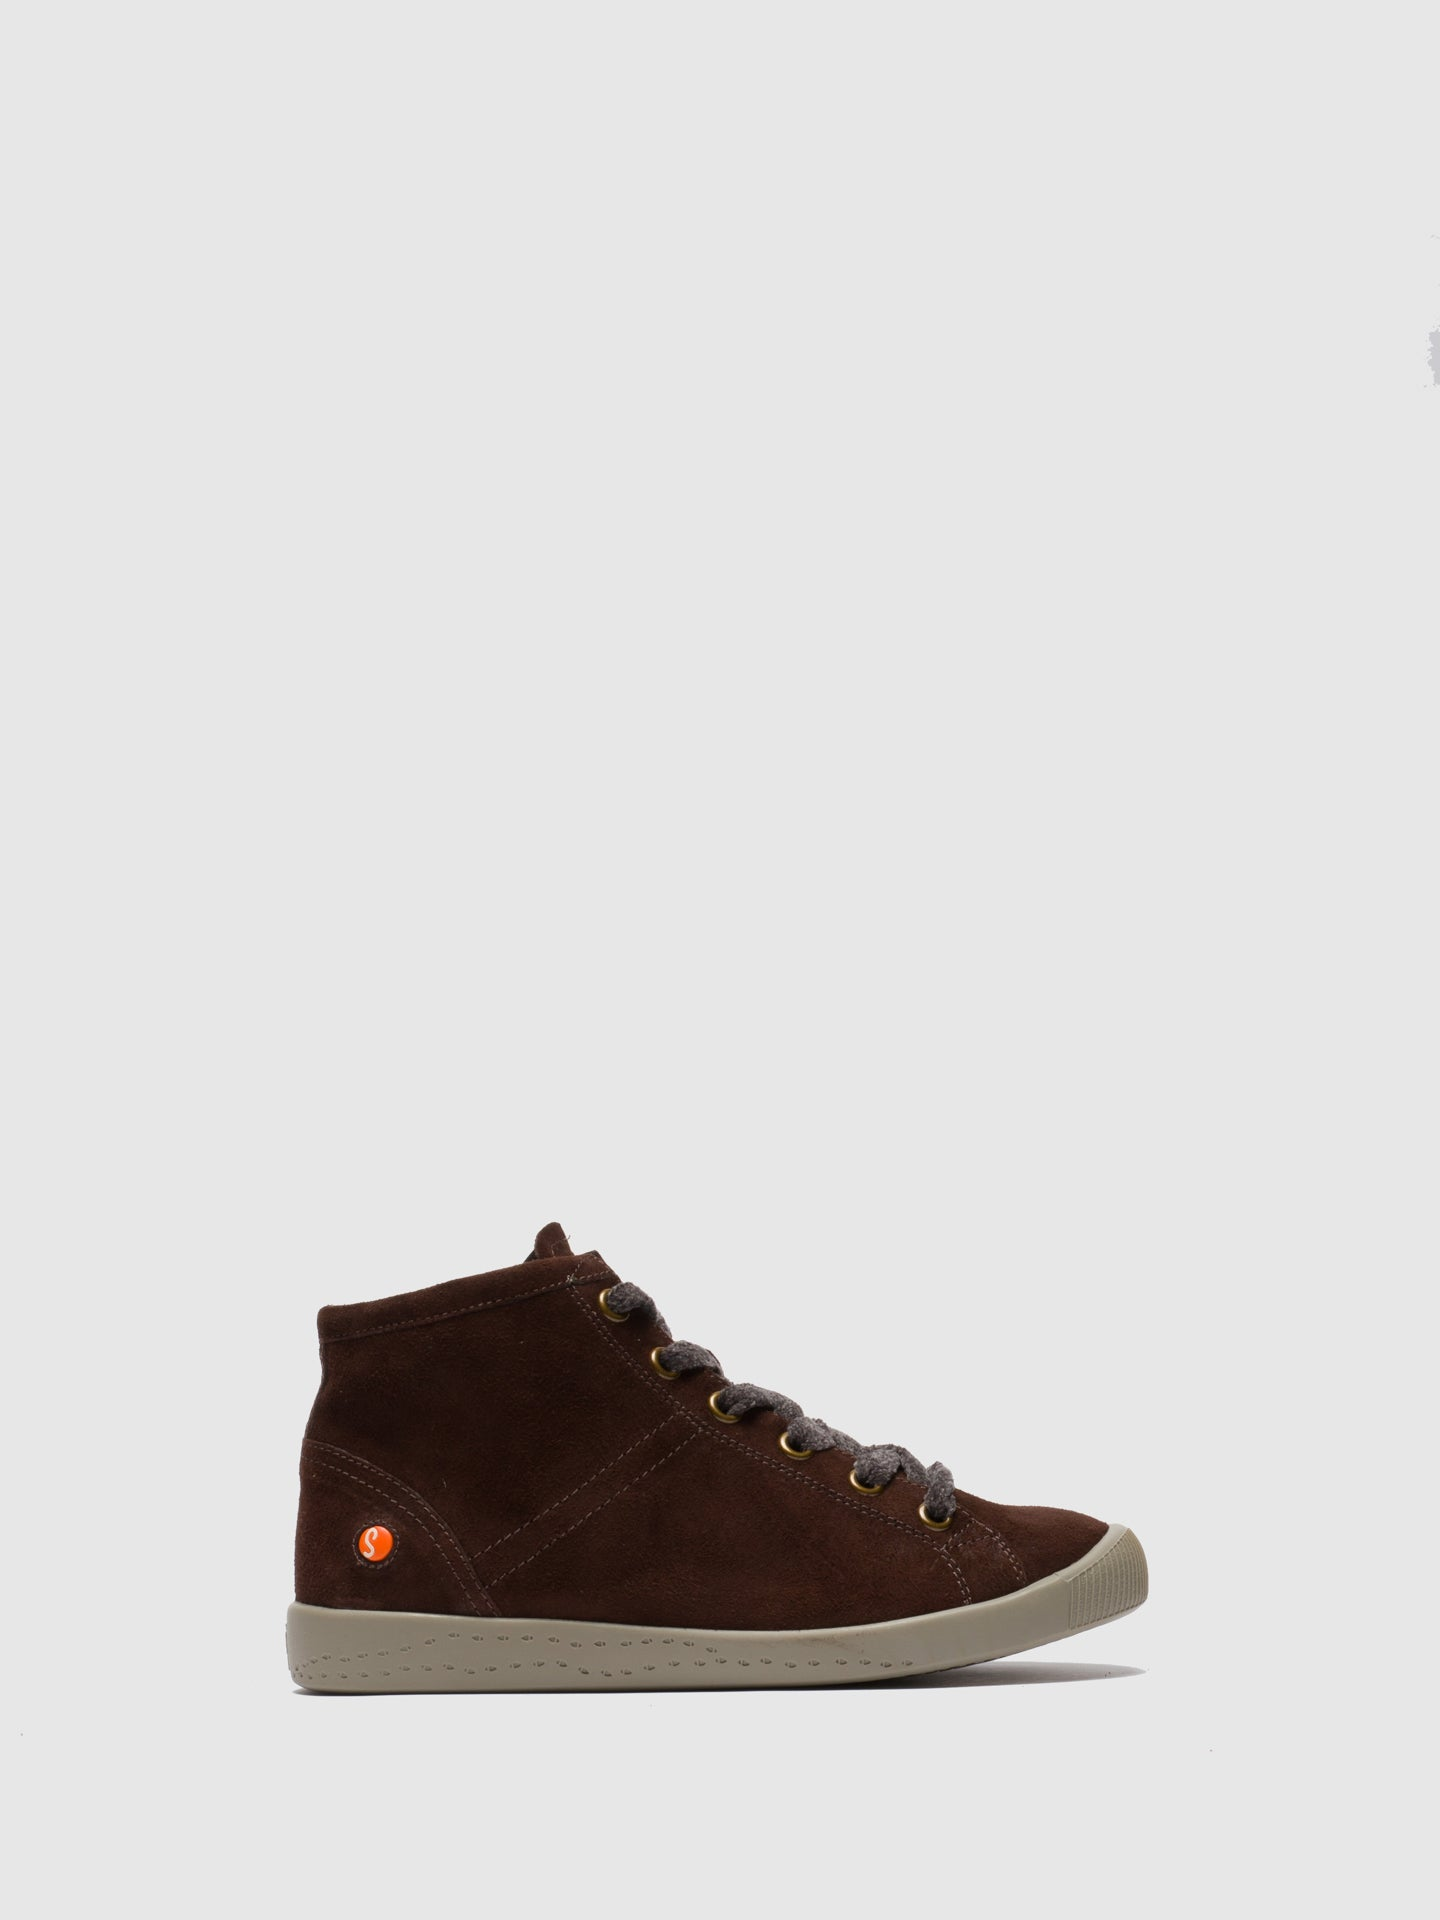 SOFTINOS High-Top-Sneakers in Braunem Leder